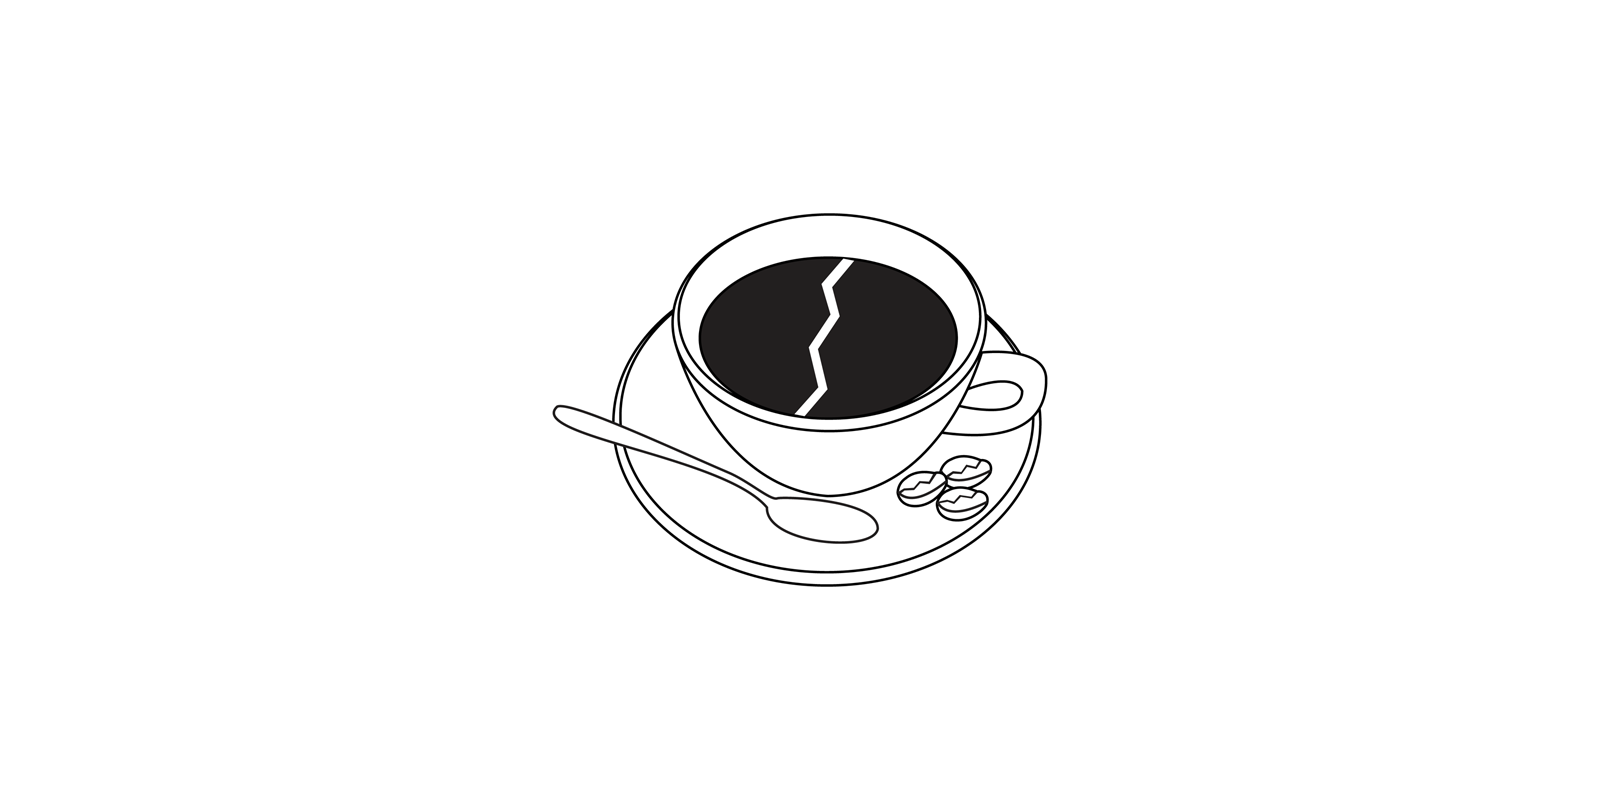 Coffee Break logo design concept.